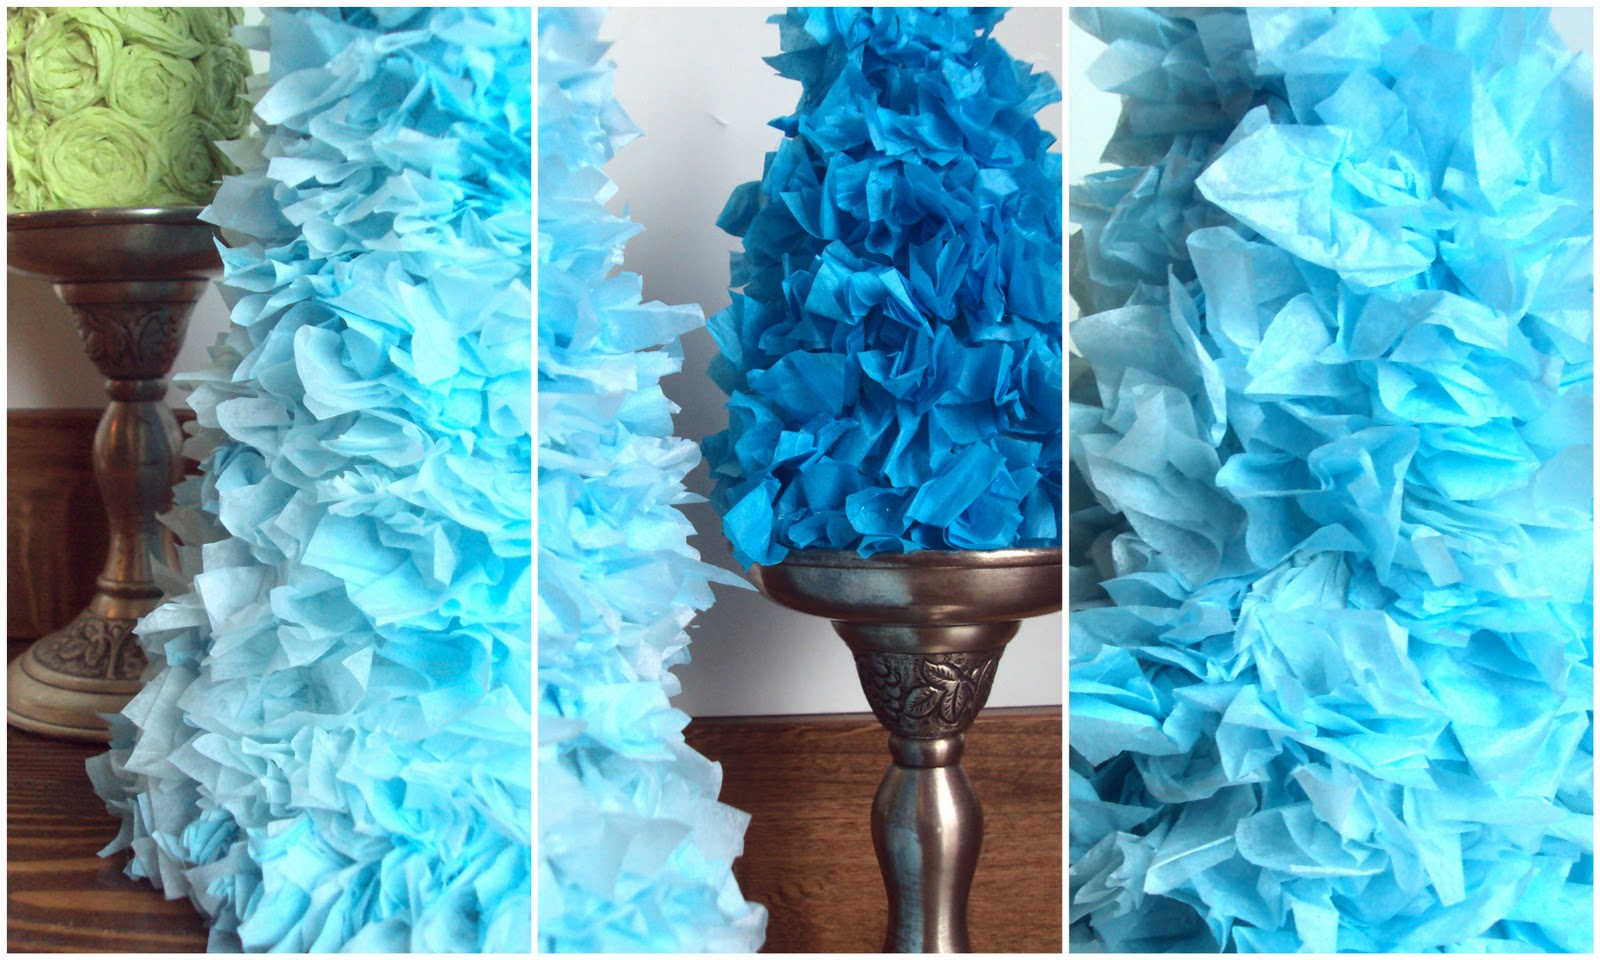 tissue paper projects Kids can crinkle, crumple, decoupagetissue paper isn't just for wrapping packages any more it makes great craft fun no matter how you use it.